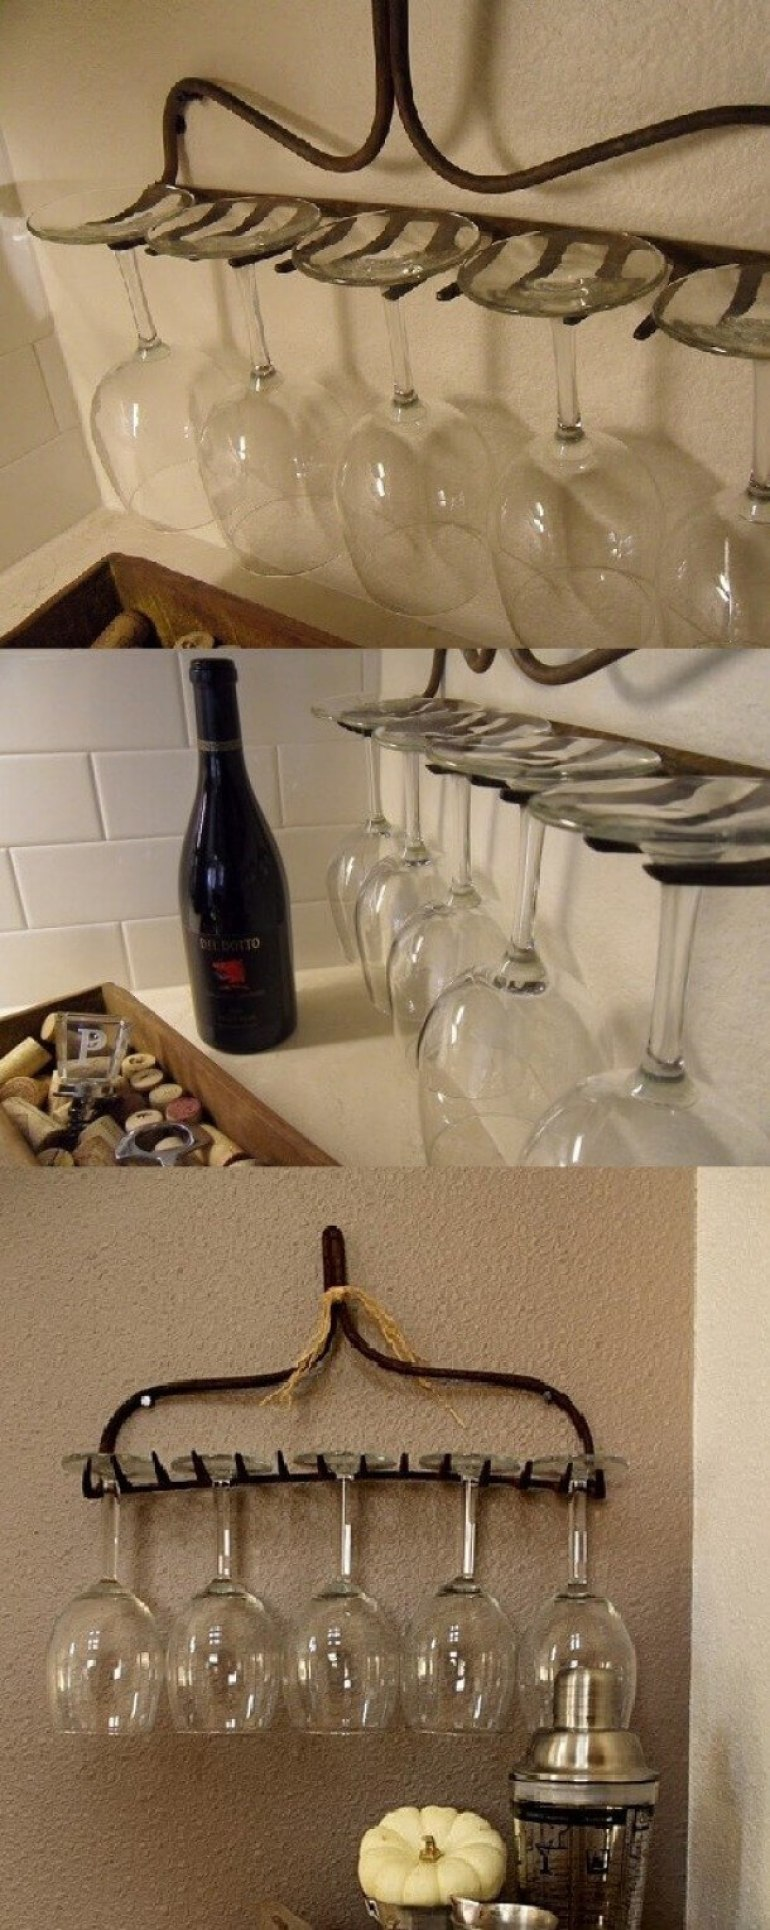 Farmhouse Kitchen Decor Design Ideas - Salvaged Antique Rake Wineglass Holder - harpmagazine.com